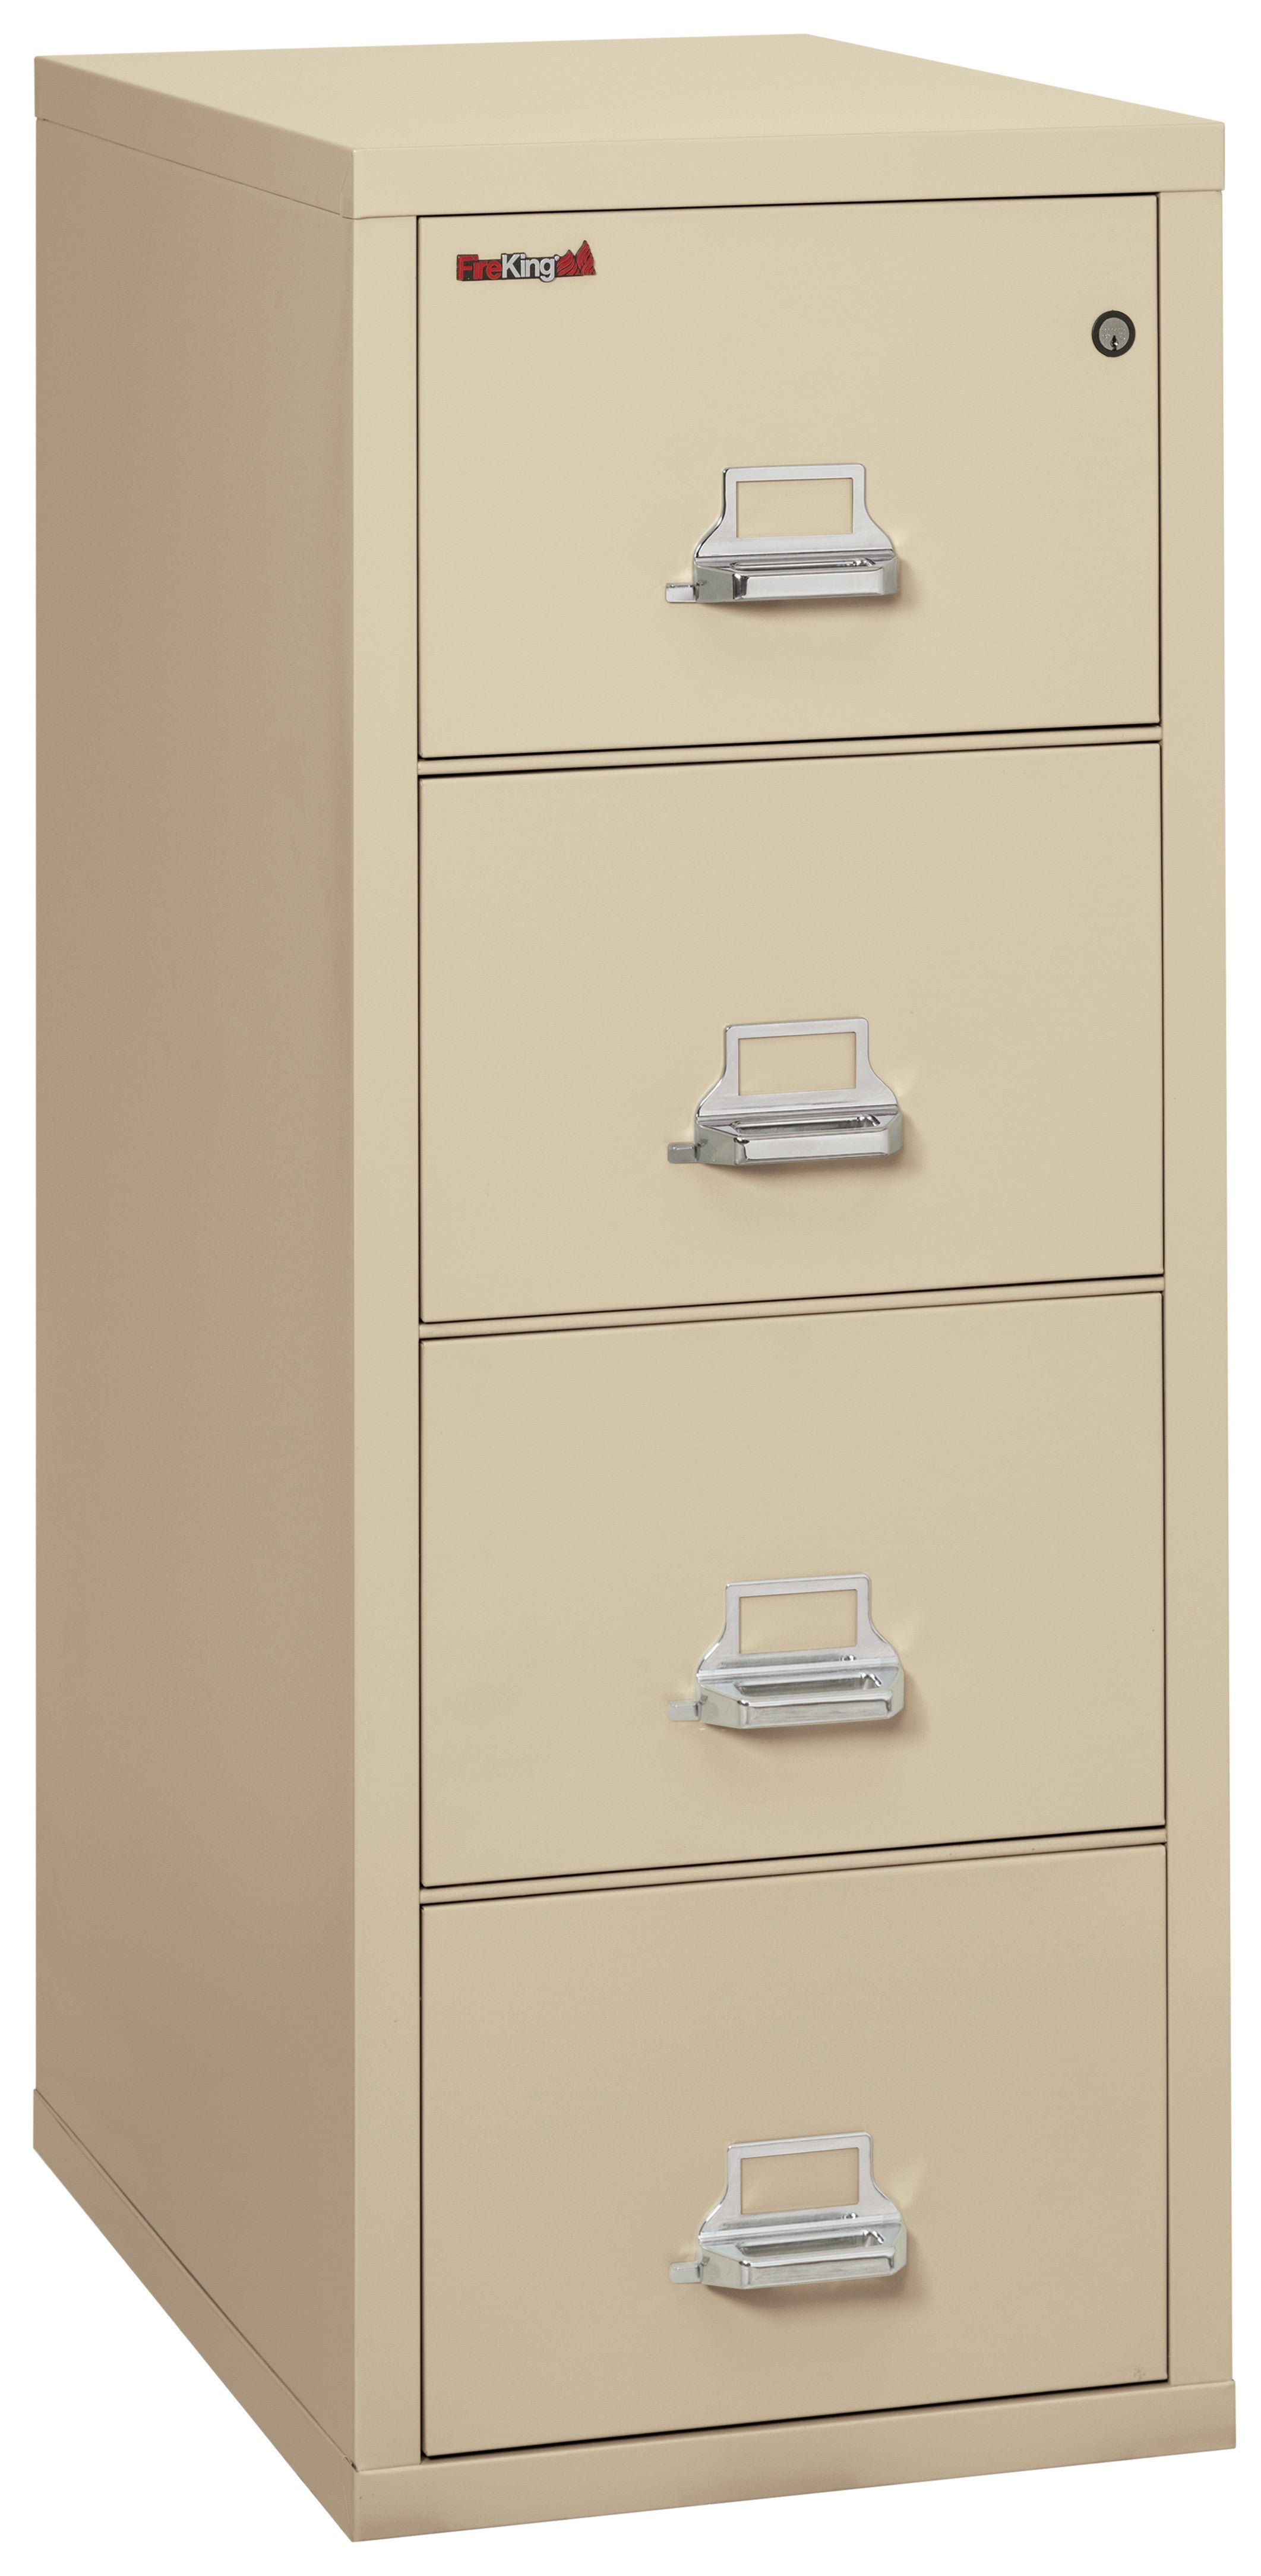 "Fireking 4 Drawer Legal 31"" D Classic Vertical File Cabinet"